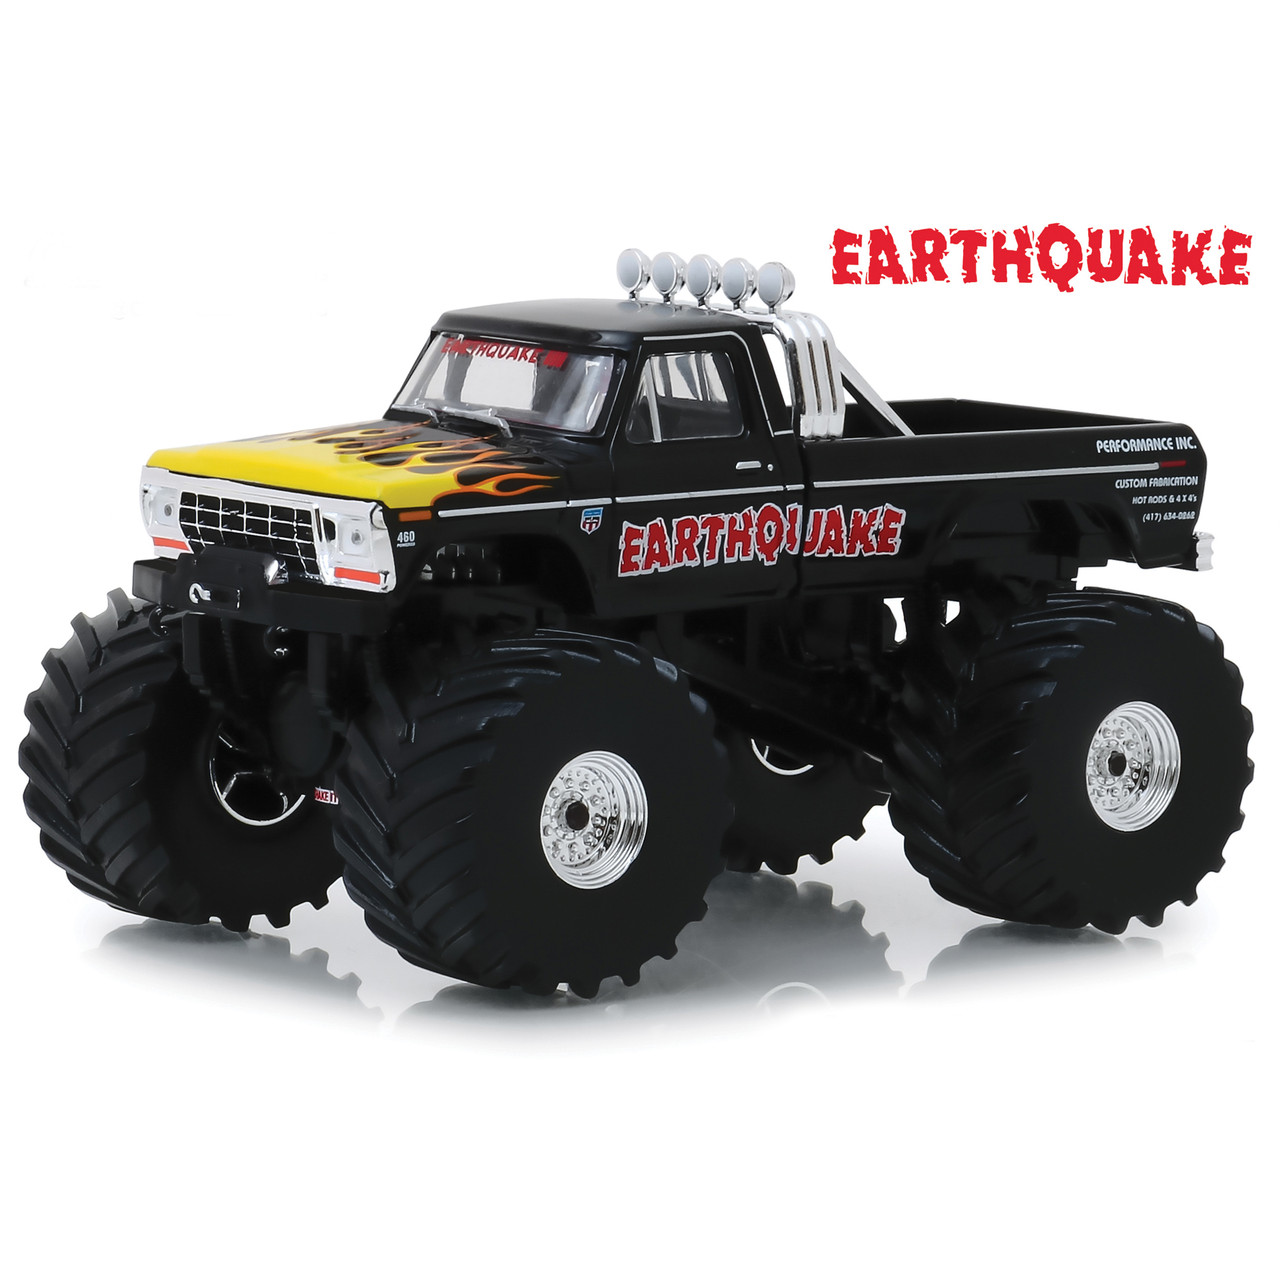 1975 Ford F250 >> Earthquake 1975 Ford F 250 Monster Truck With 66 Inch Tires 1 43 Scale Diecast Model By Greenlight